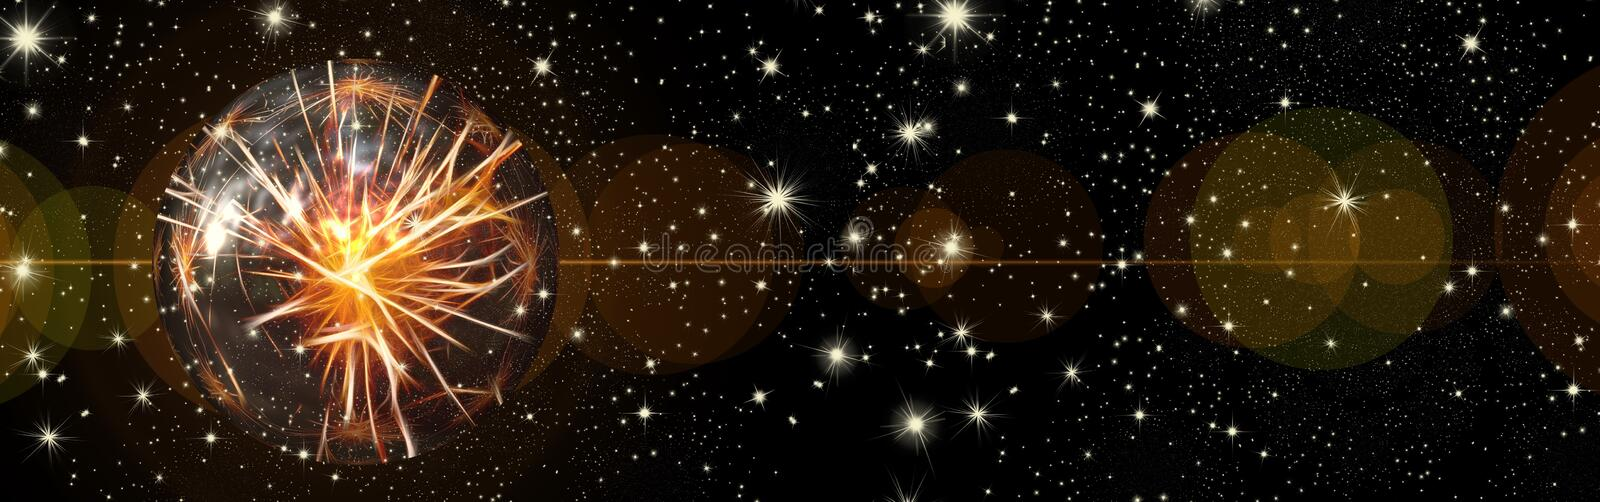 Christmas wishes, stars,ball, background stock photography